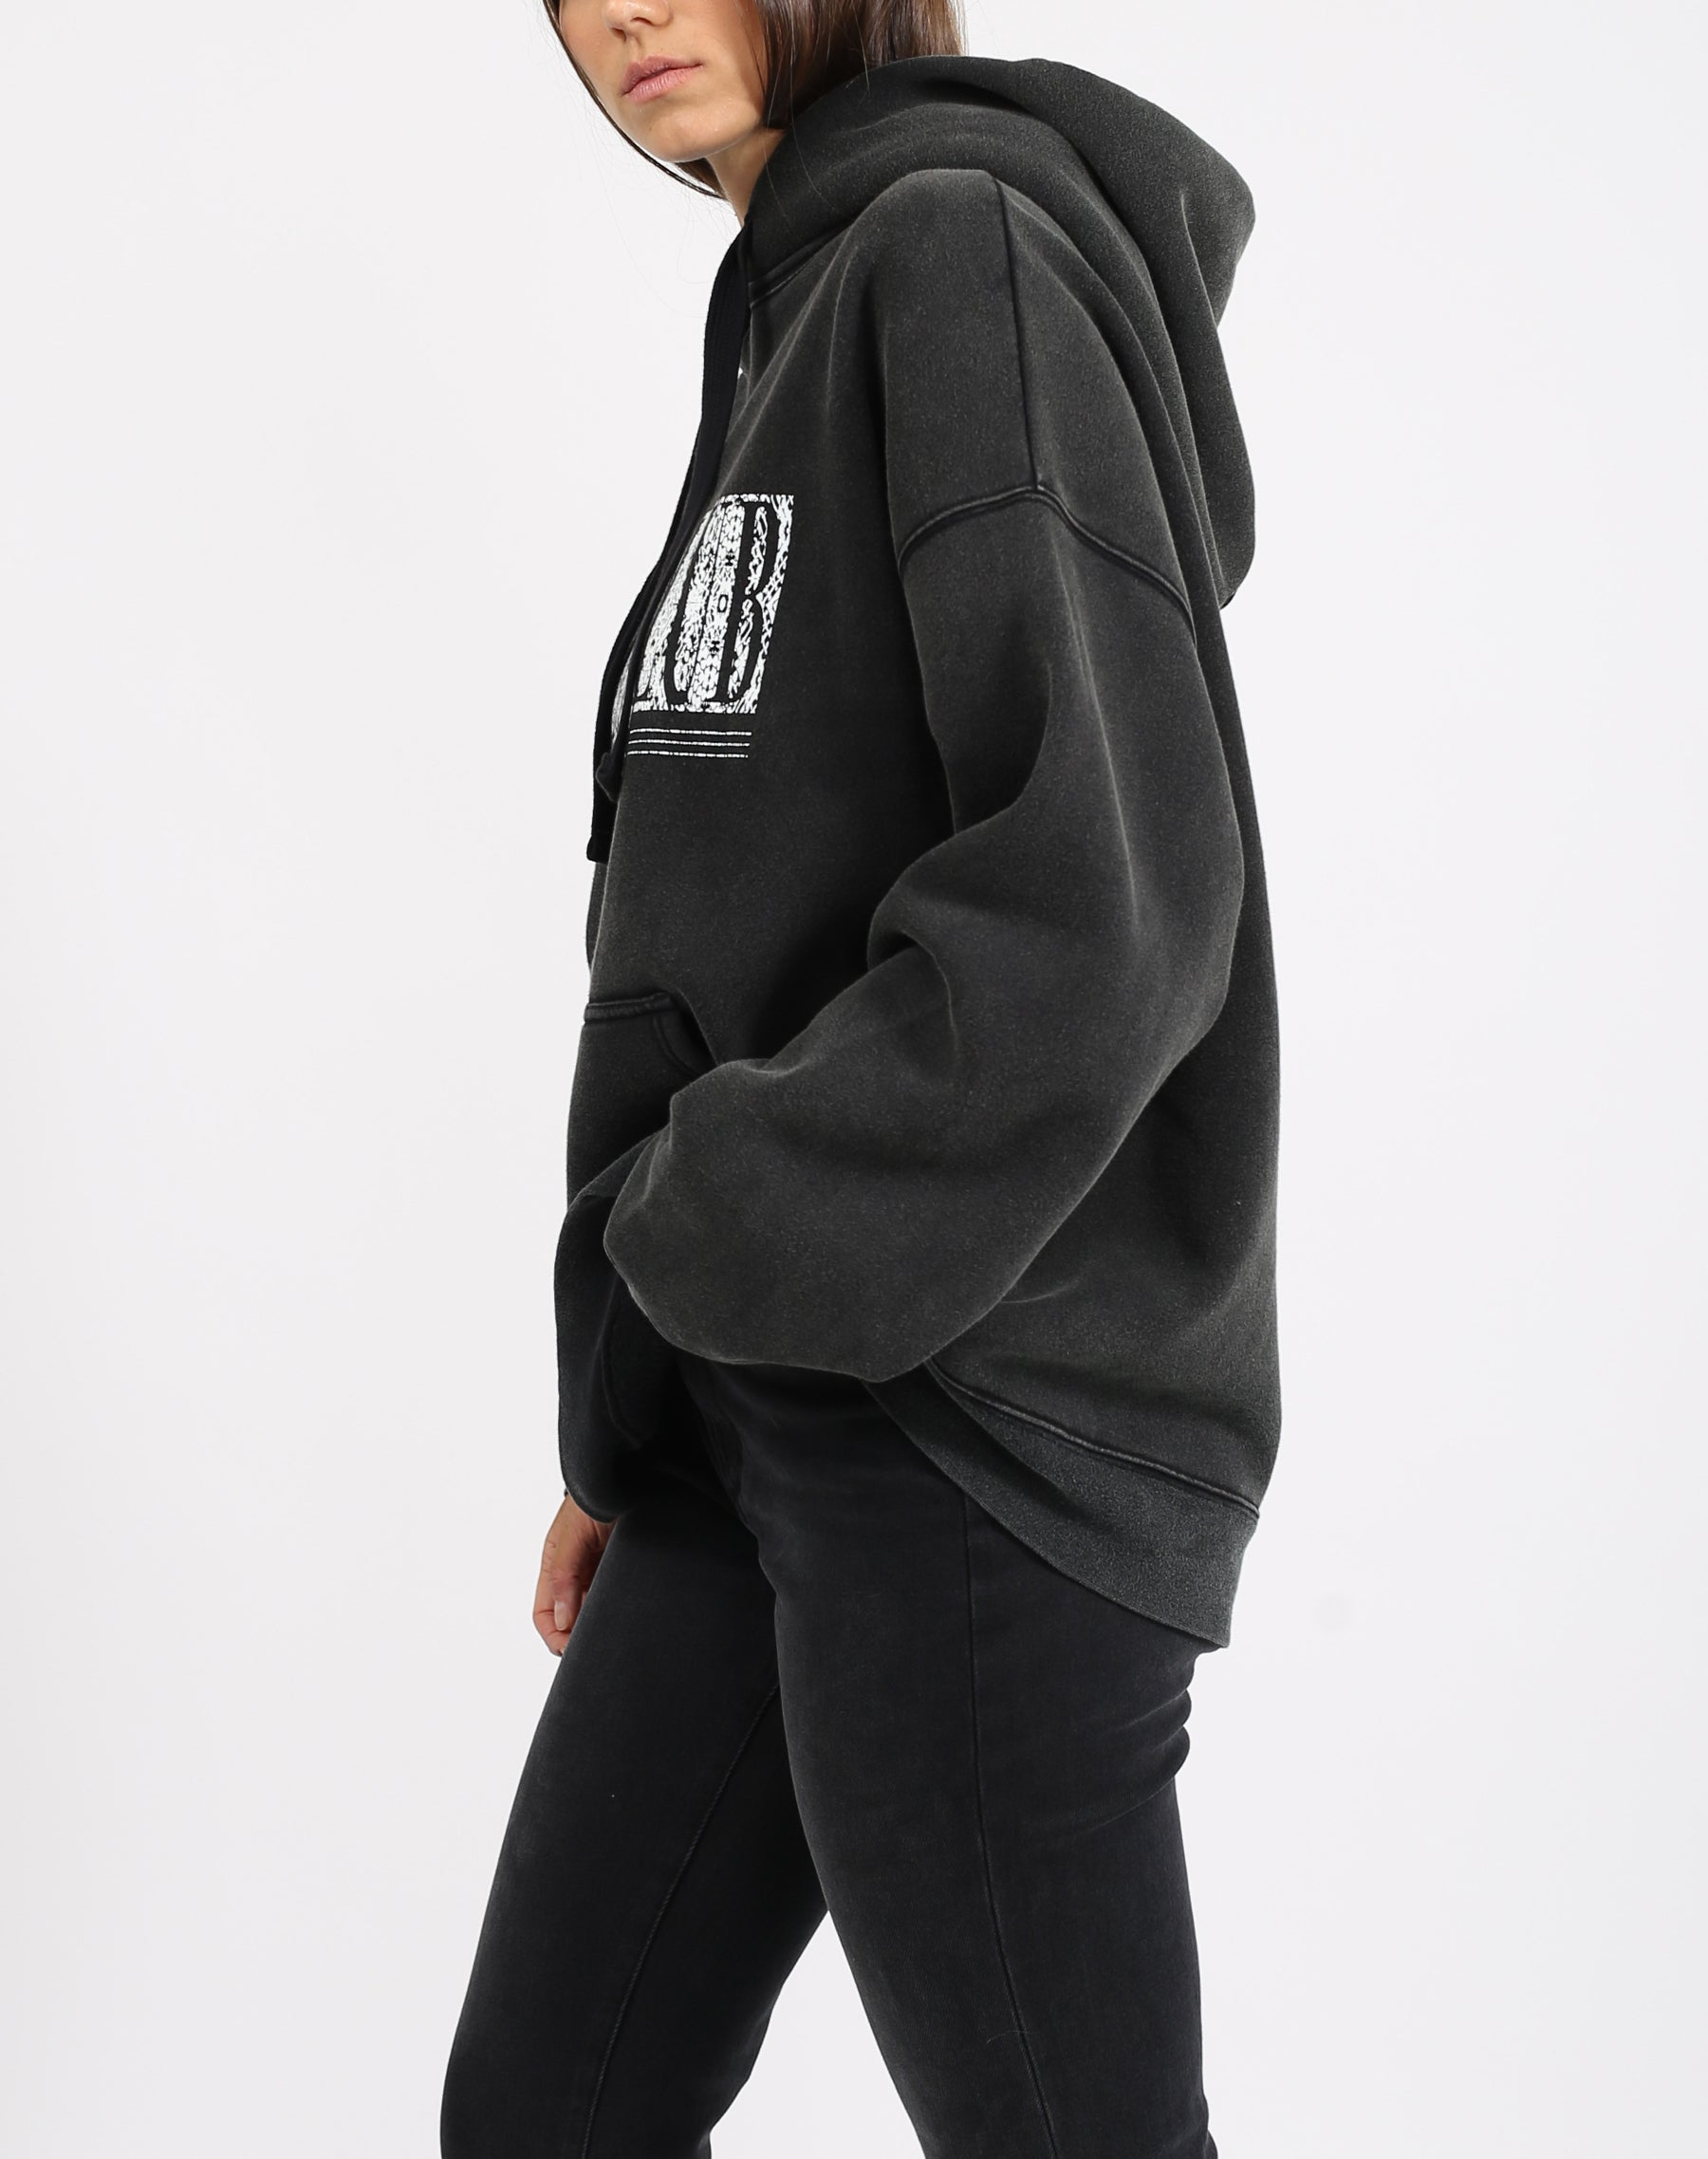 This is a photo of the side of a model wearing the babes club definition big sister hoodie in acid wash black by brunette the label.